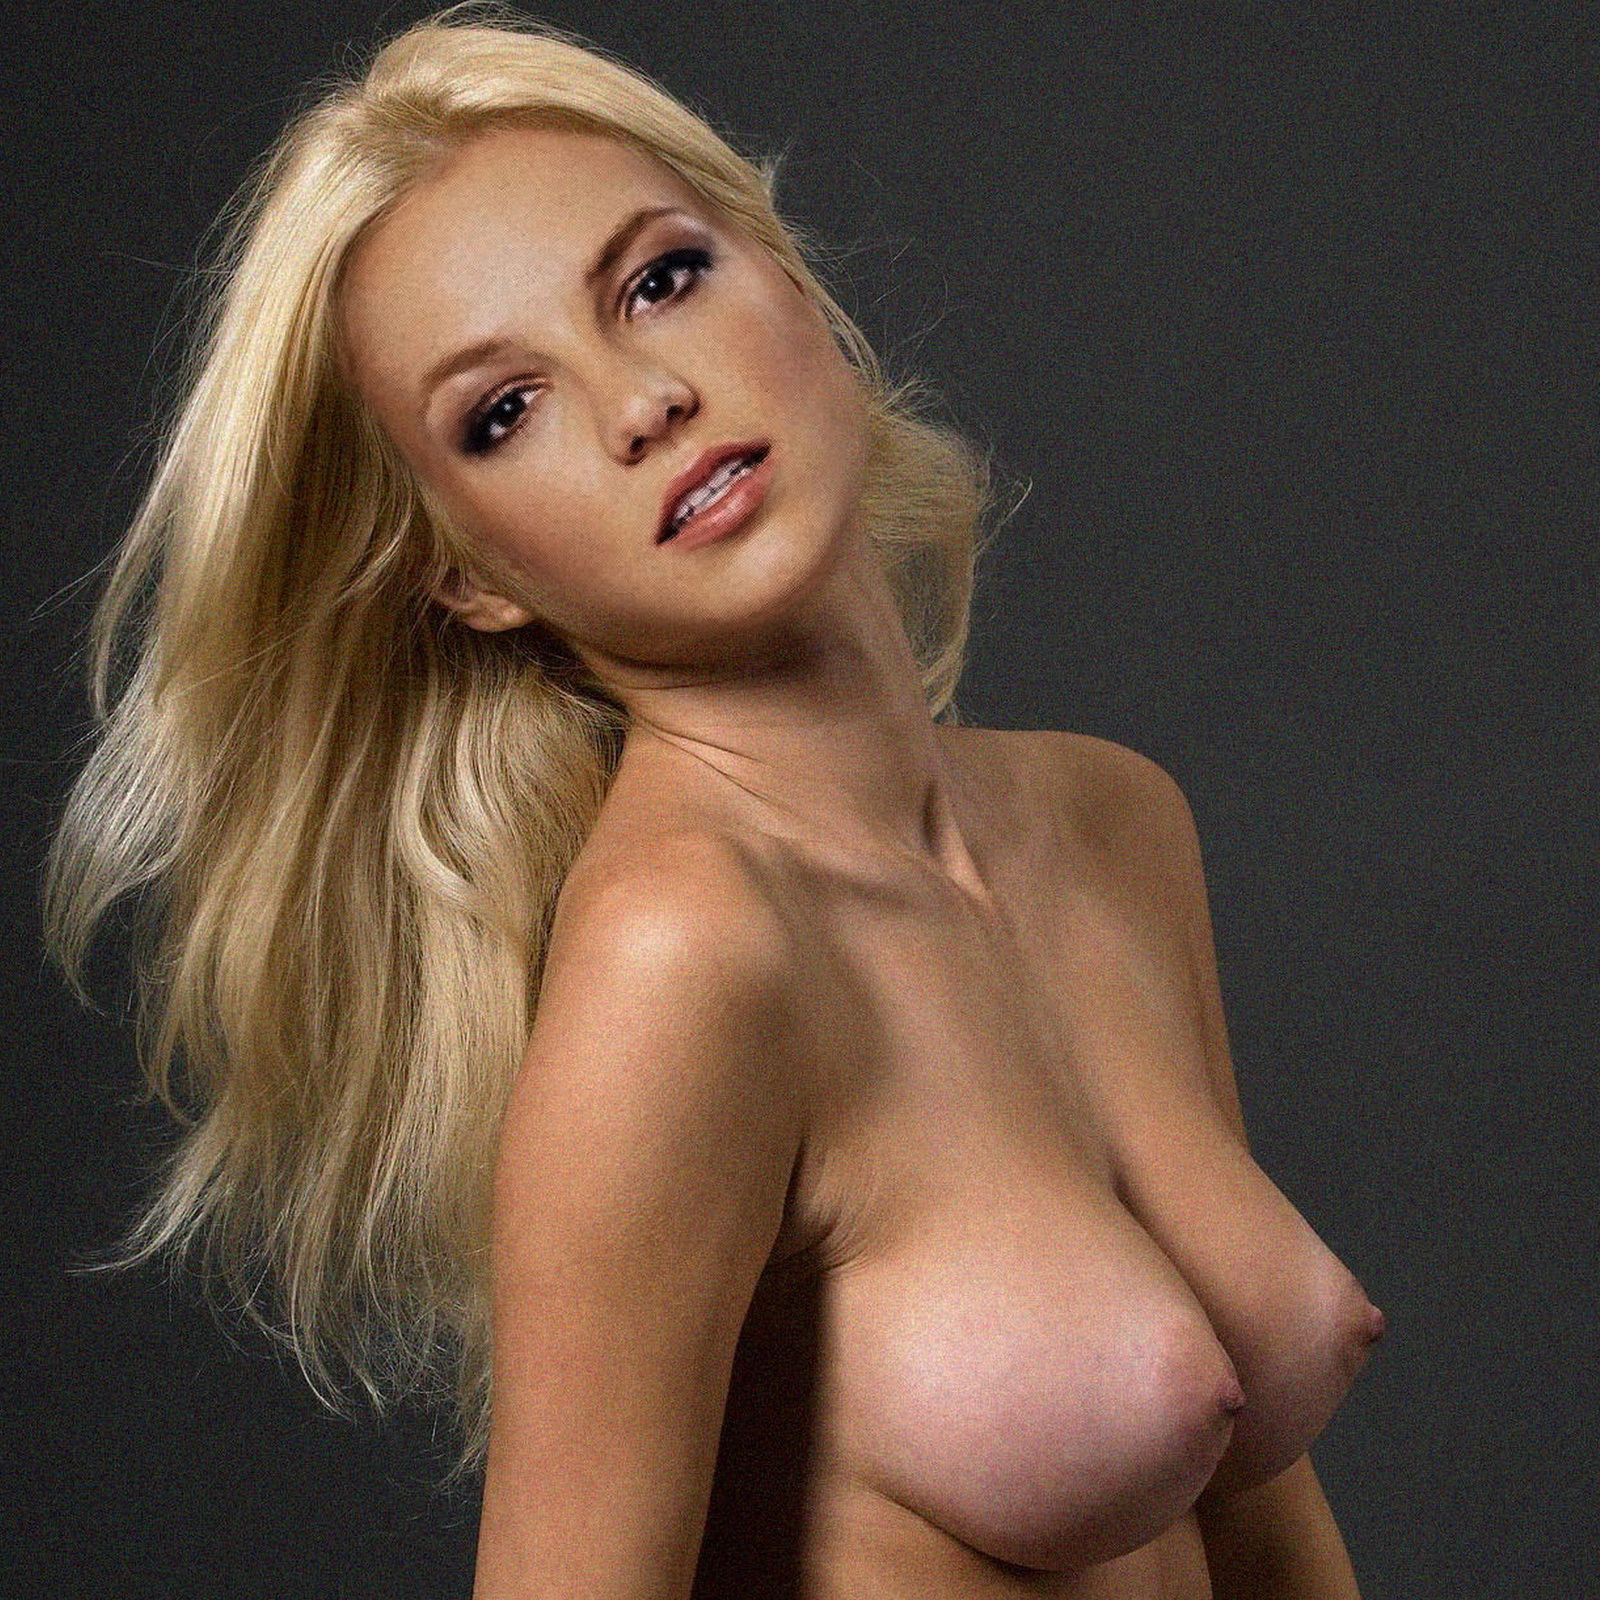 Britney Spears young and nude